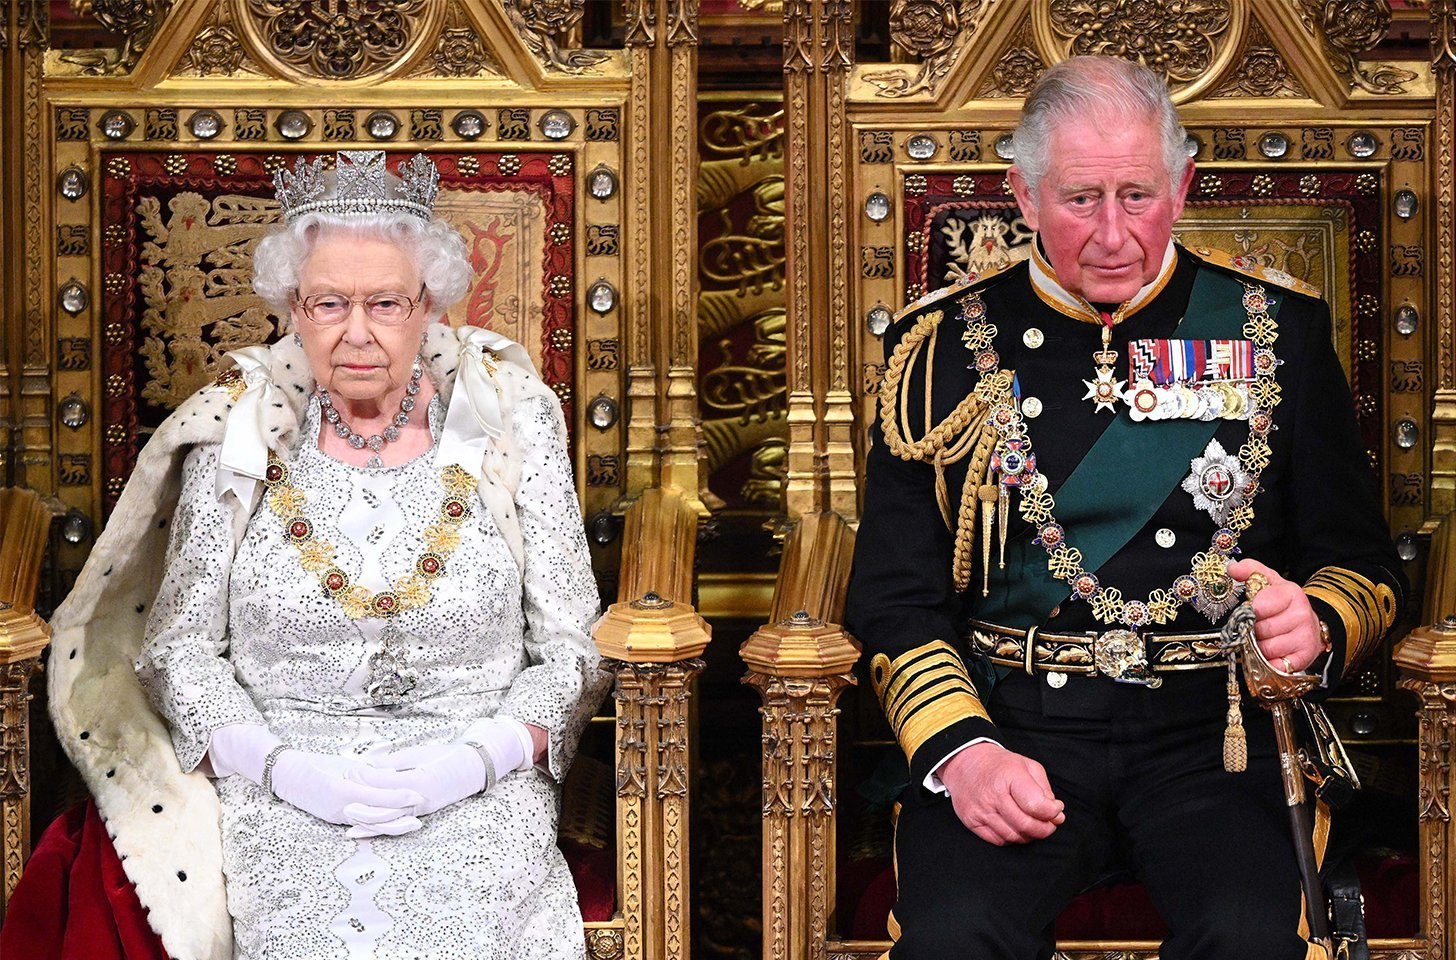 Queen Elizabeth Stepping Down In Wake Of Prince Philip's Death?